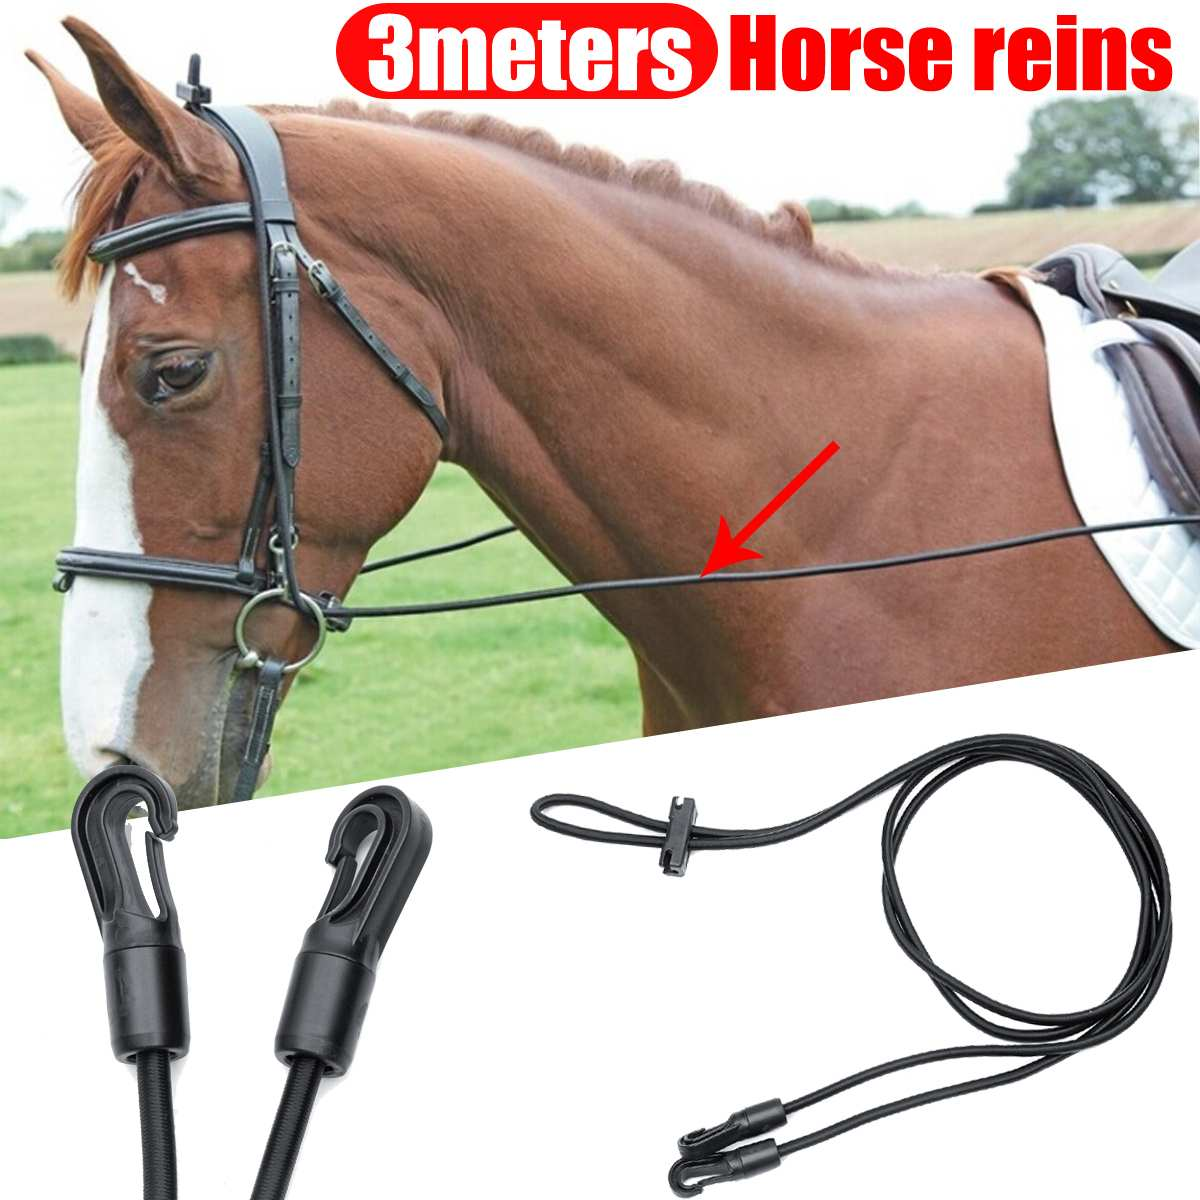 Equestrian Neck Stretcher for Horse to Stretch Neck and Lower Frame 3 Meters